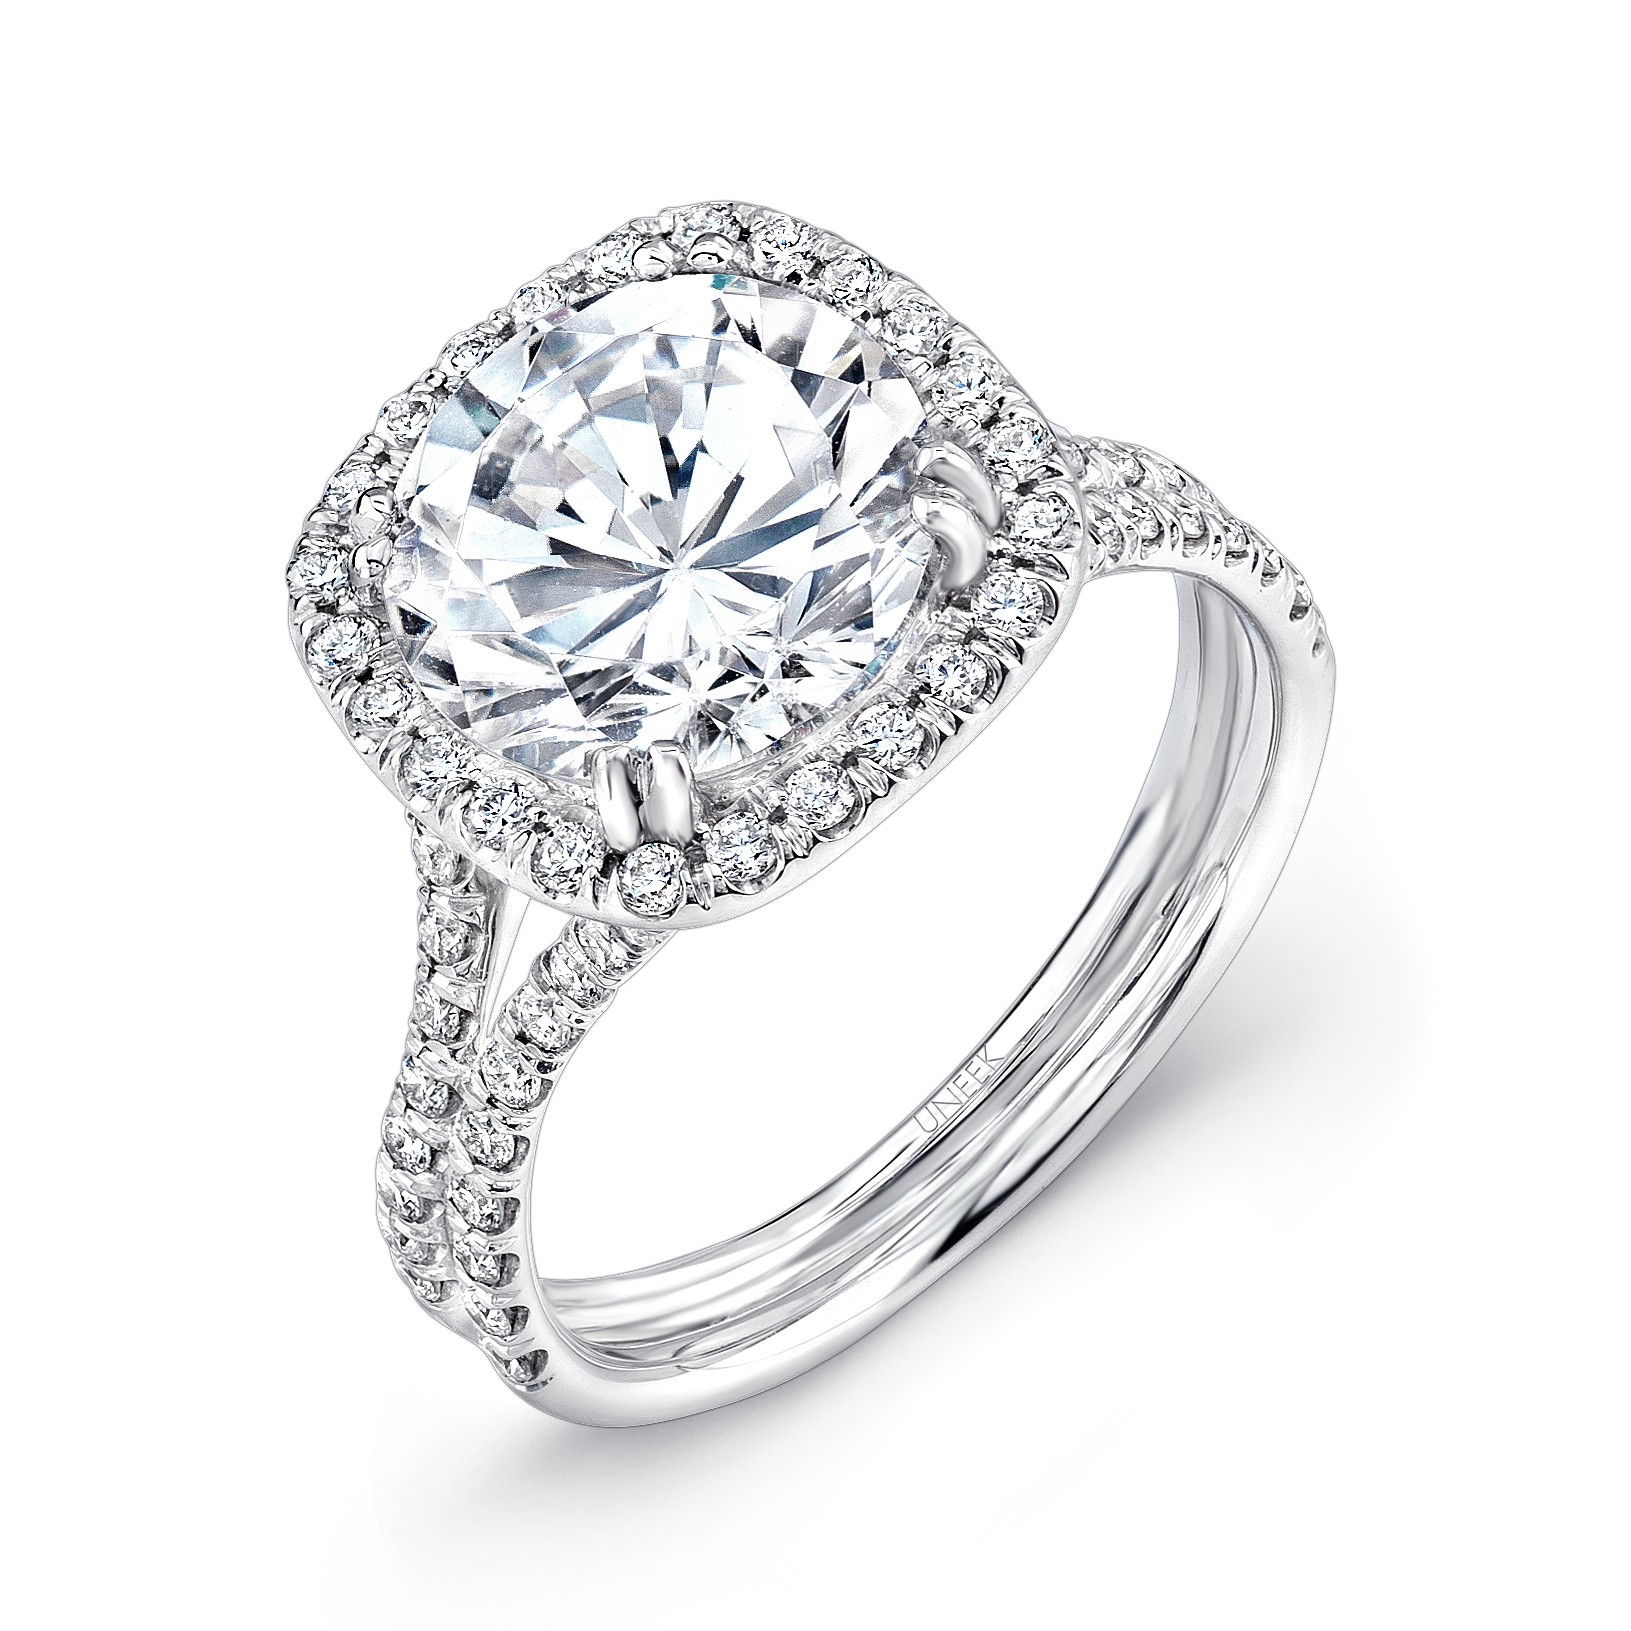 Uneek 3 Carat Round Diamond Engagement Ring With Cushion Shaped Halo And Pave Double Shank In 18k W